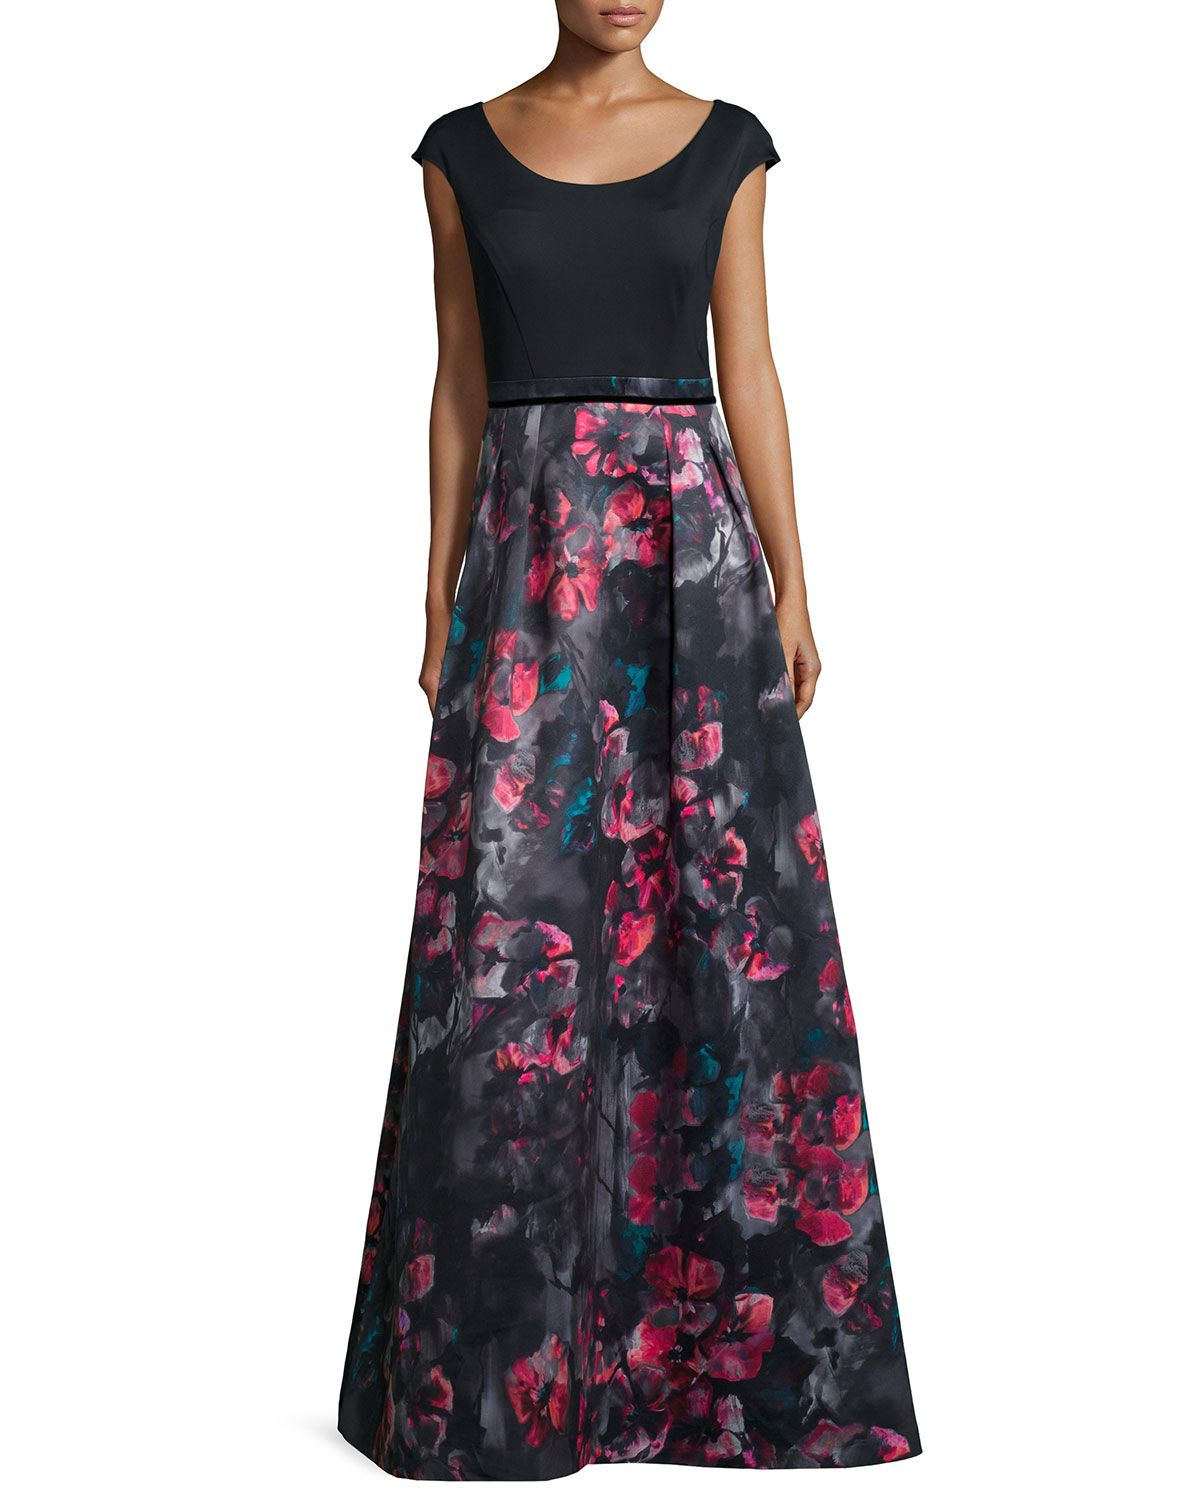 Cap-Sleeve Combo Floral-Print Combo Gown, Size: 4, Black Multi - Kay Unger New York